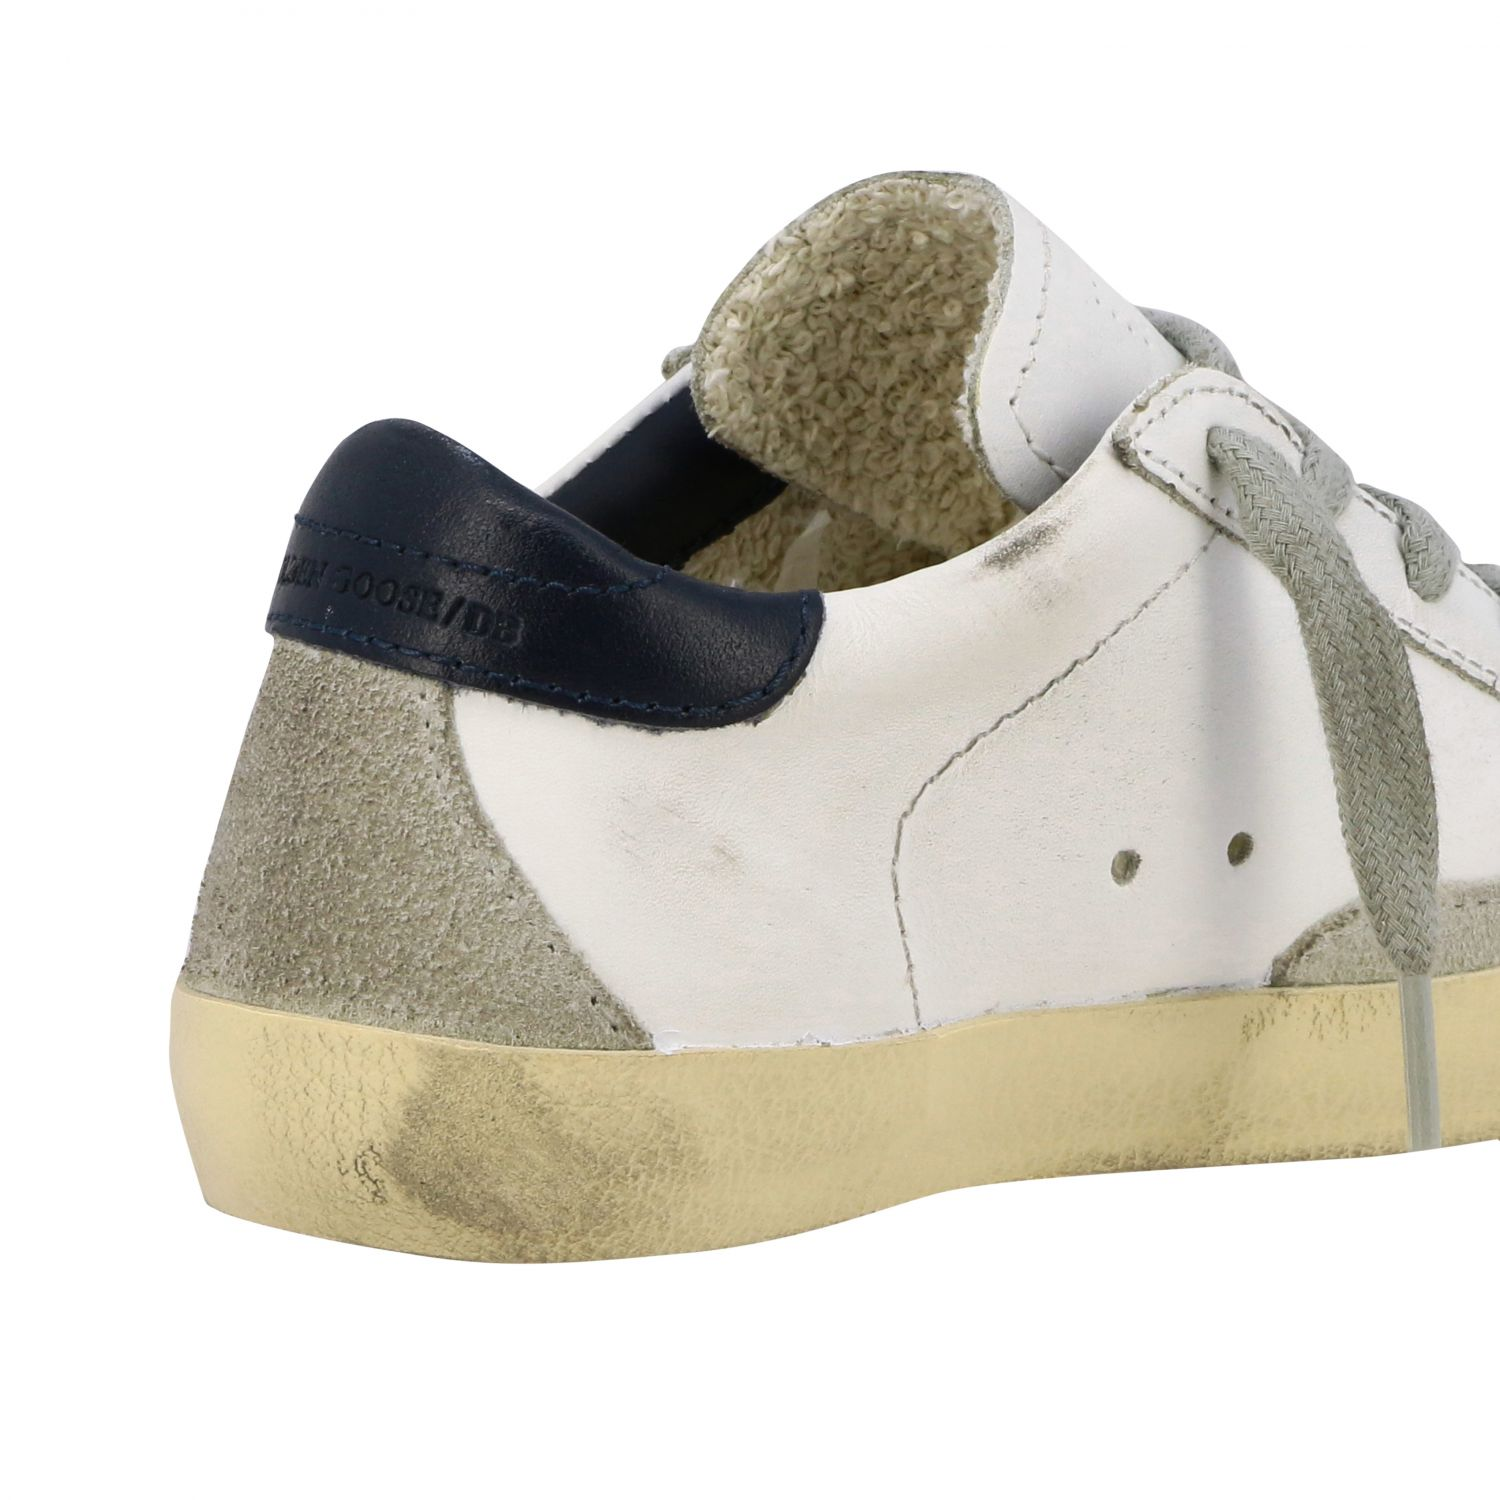 Superstar Golden Goose sneakers in leather and suede with star white 5